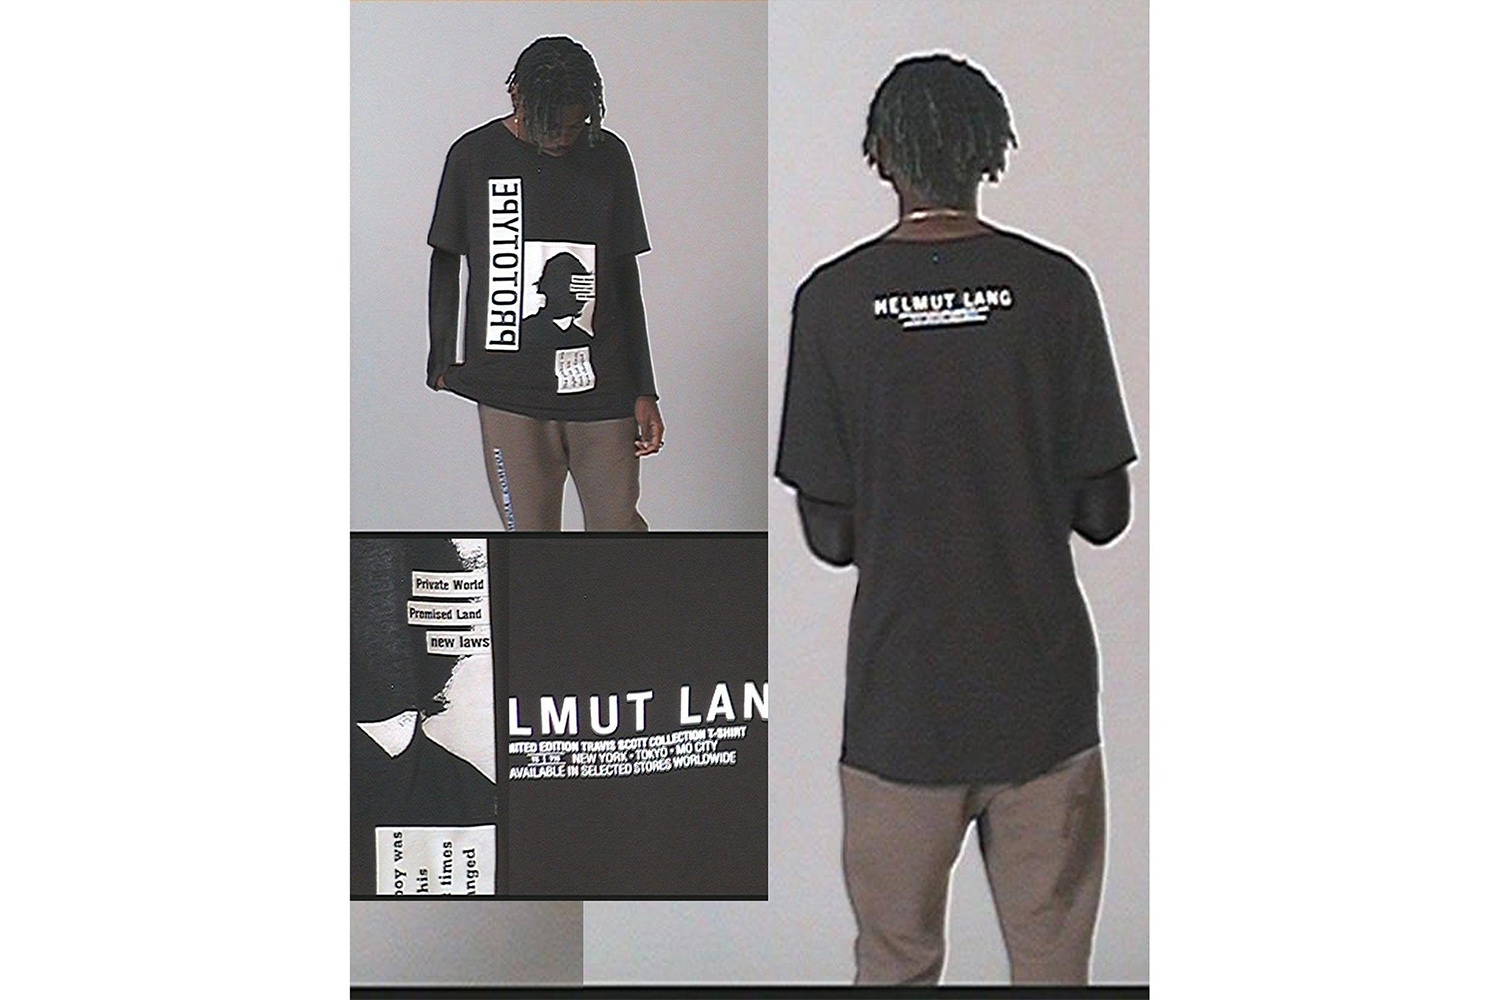 Check out the Travis Scott x Helmut Lang Collection